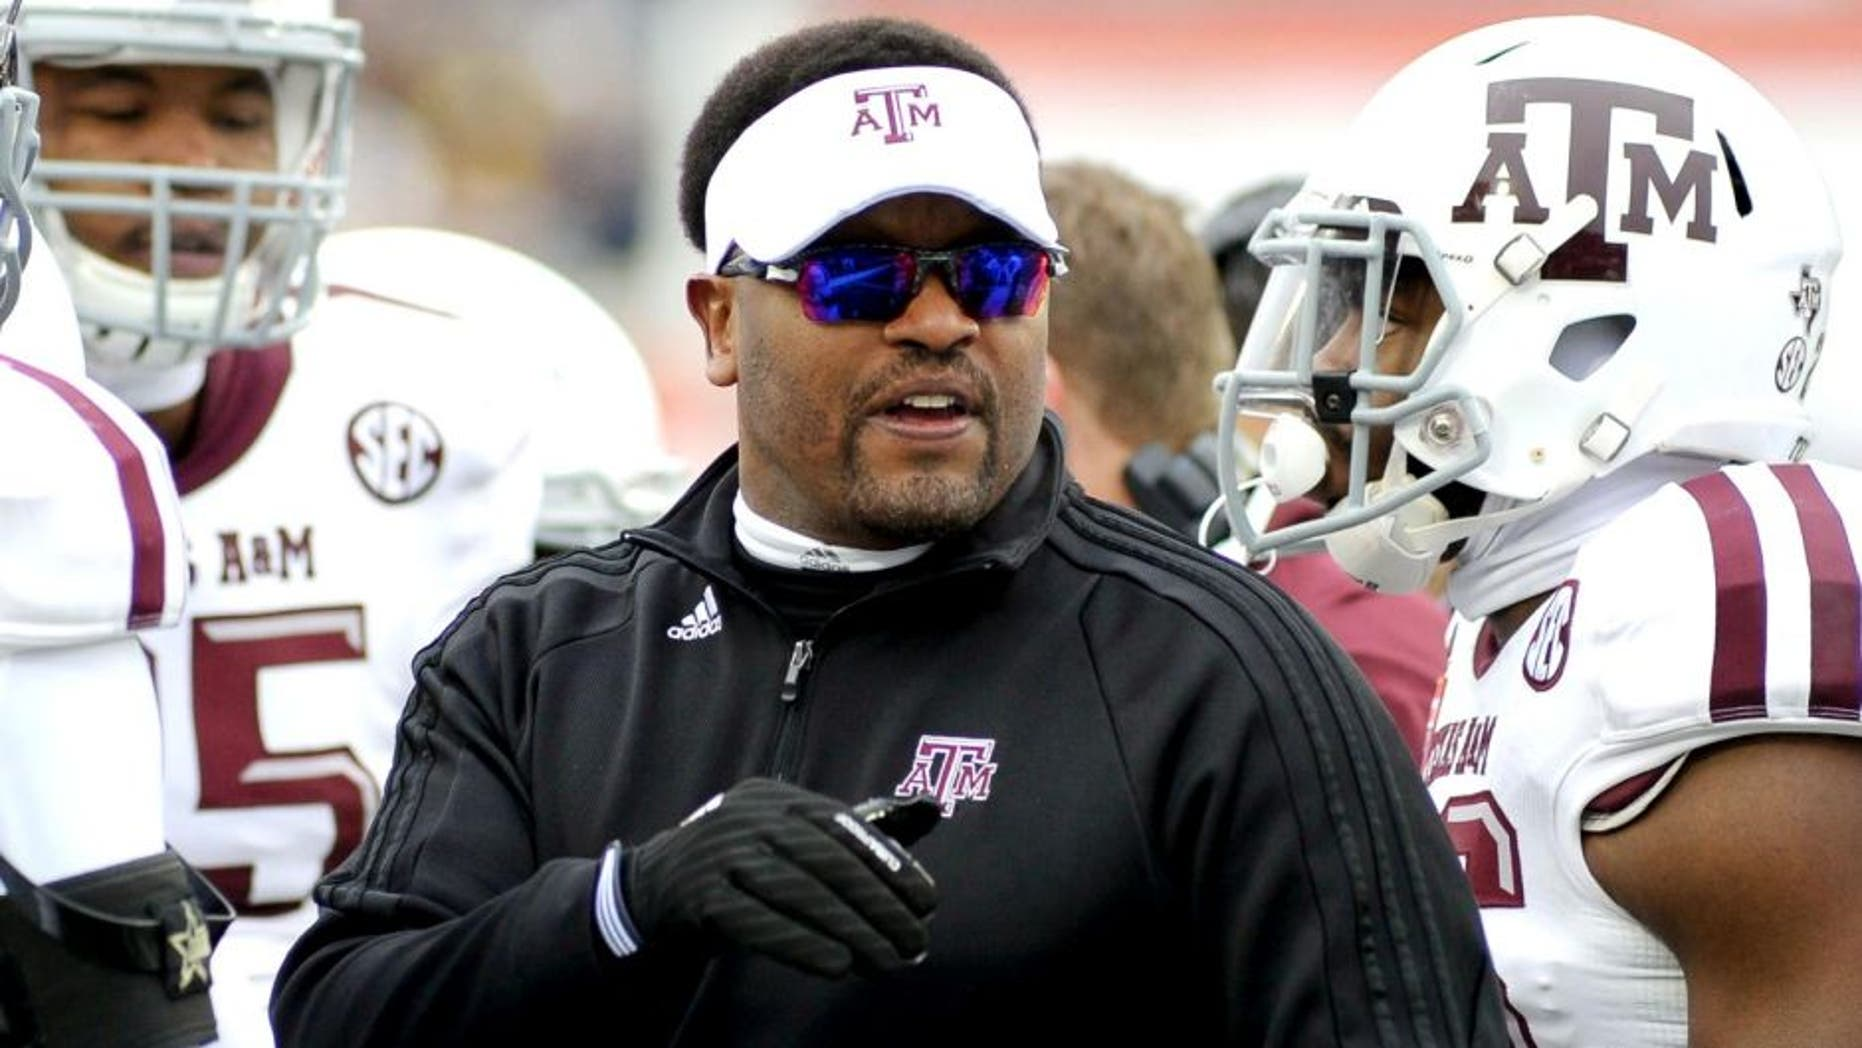 Dec 29, 2014; Memphis, TN, USA; Texas A&M Aggies head coach Kevin Sumlin during the game against the West Virginia Mountaineers in the 2014 Liberty Bowl at Liberty Bowl Memorial Stadium. Mandatory Credit: Justin Ford-USA TODAY Sports